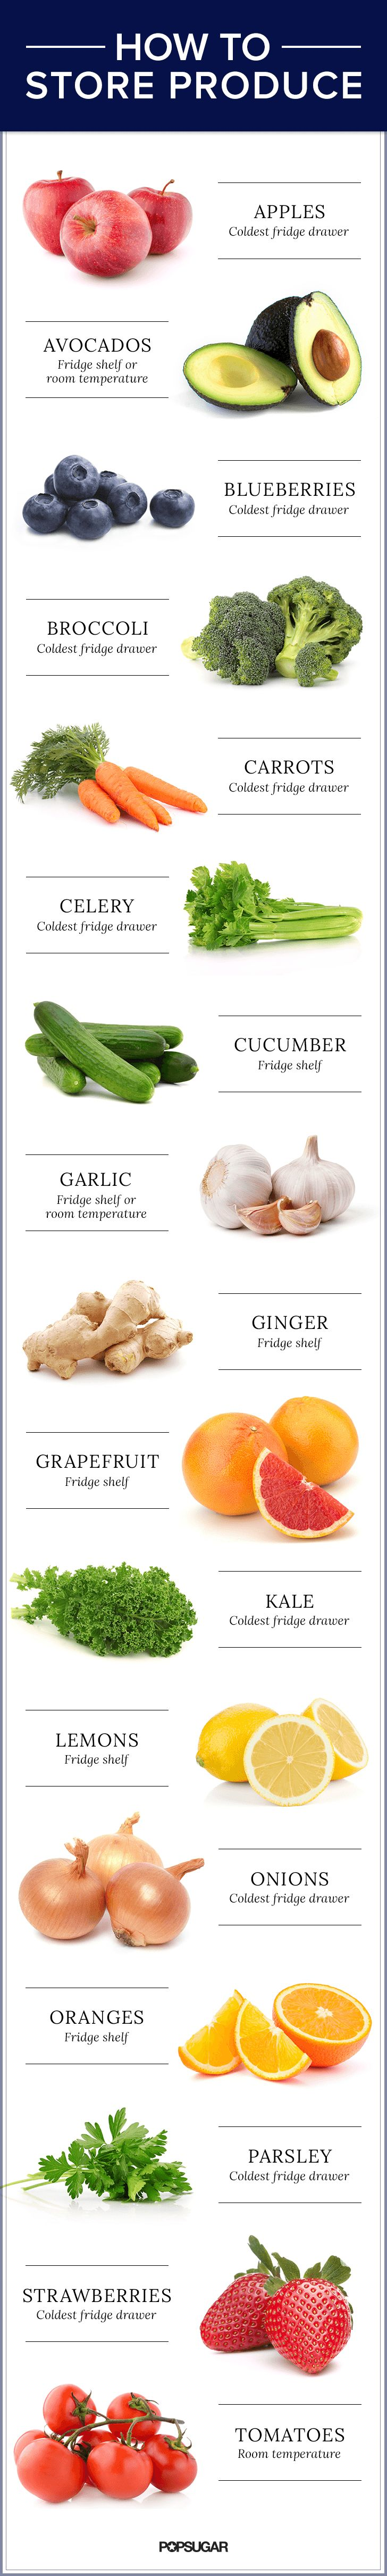 Do apples belong on the counter or the fridge? Should those carrots be in a drawer or is just anywhere okay? We're here to help! Check out this infographic (and many others!) on POPSUGAR